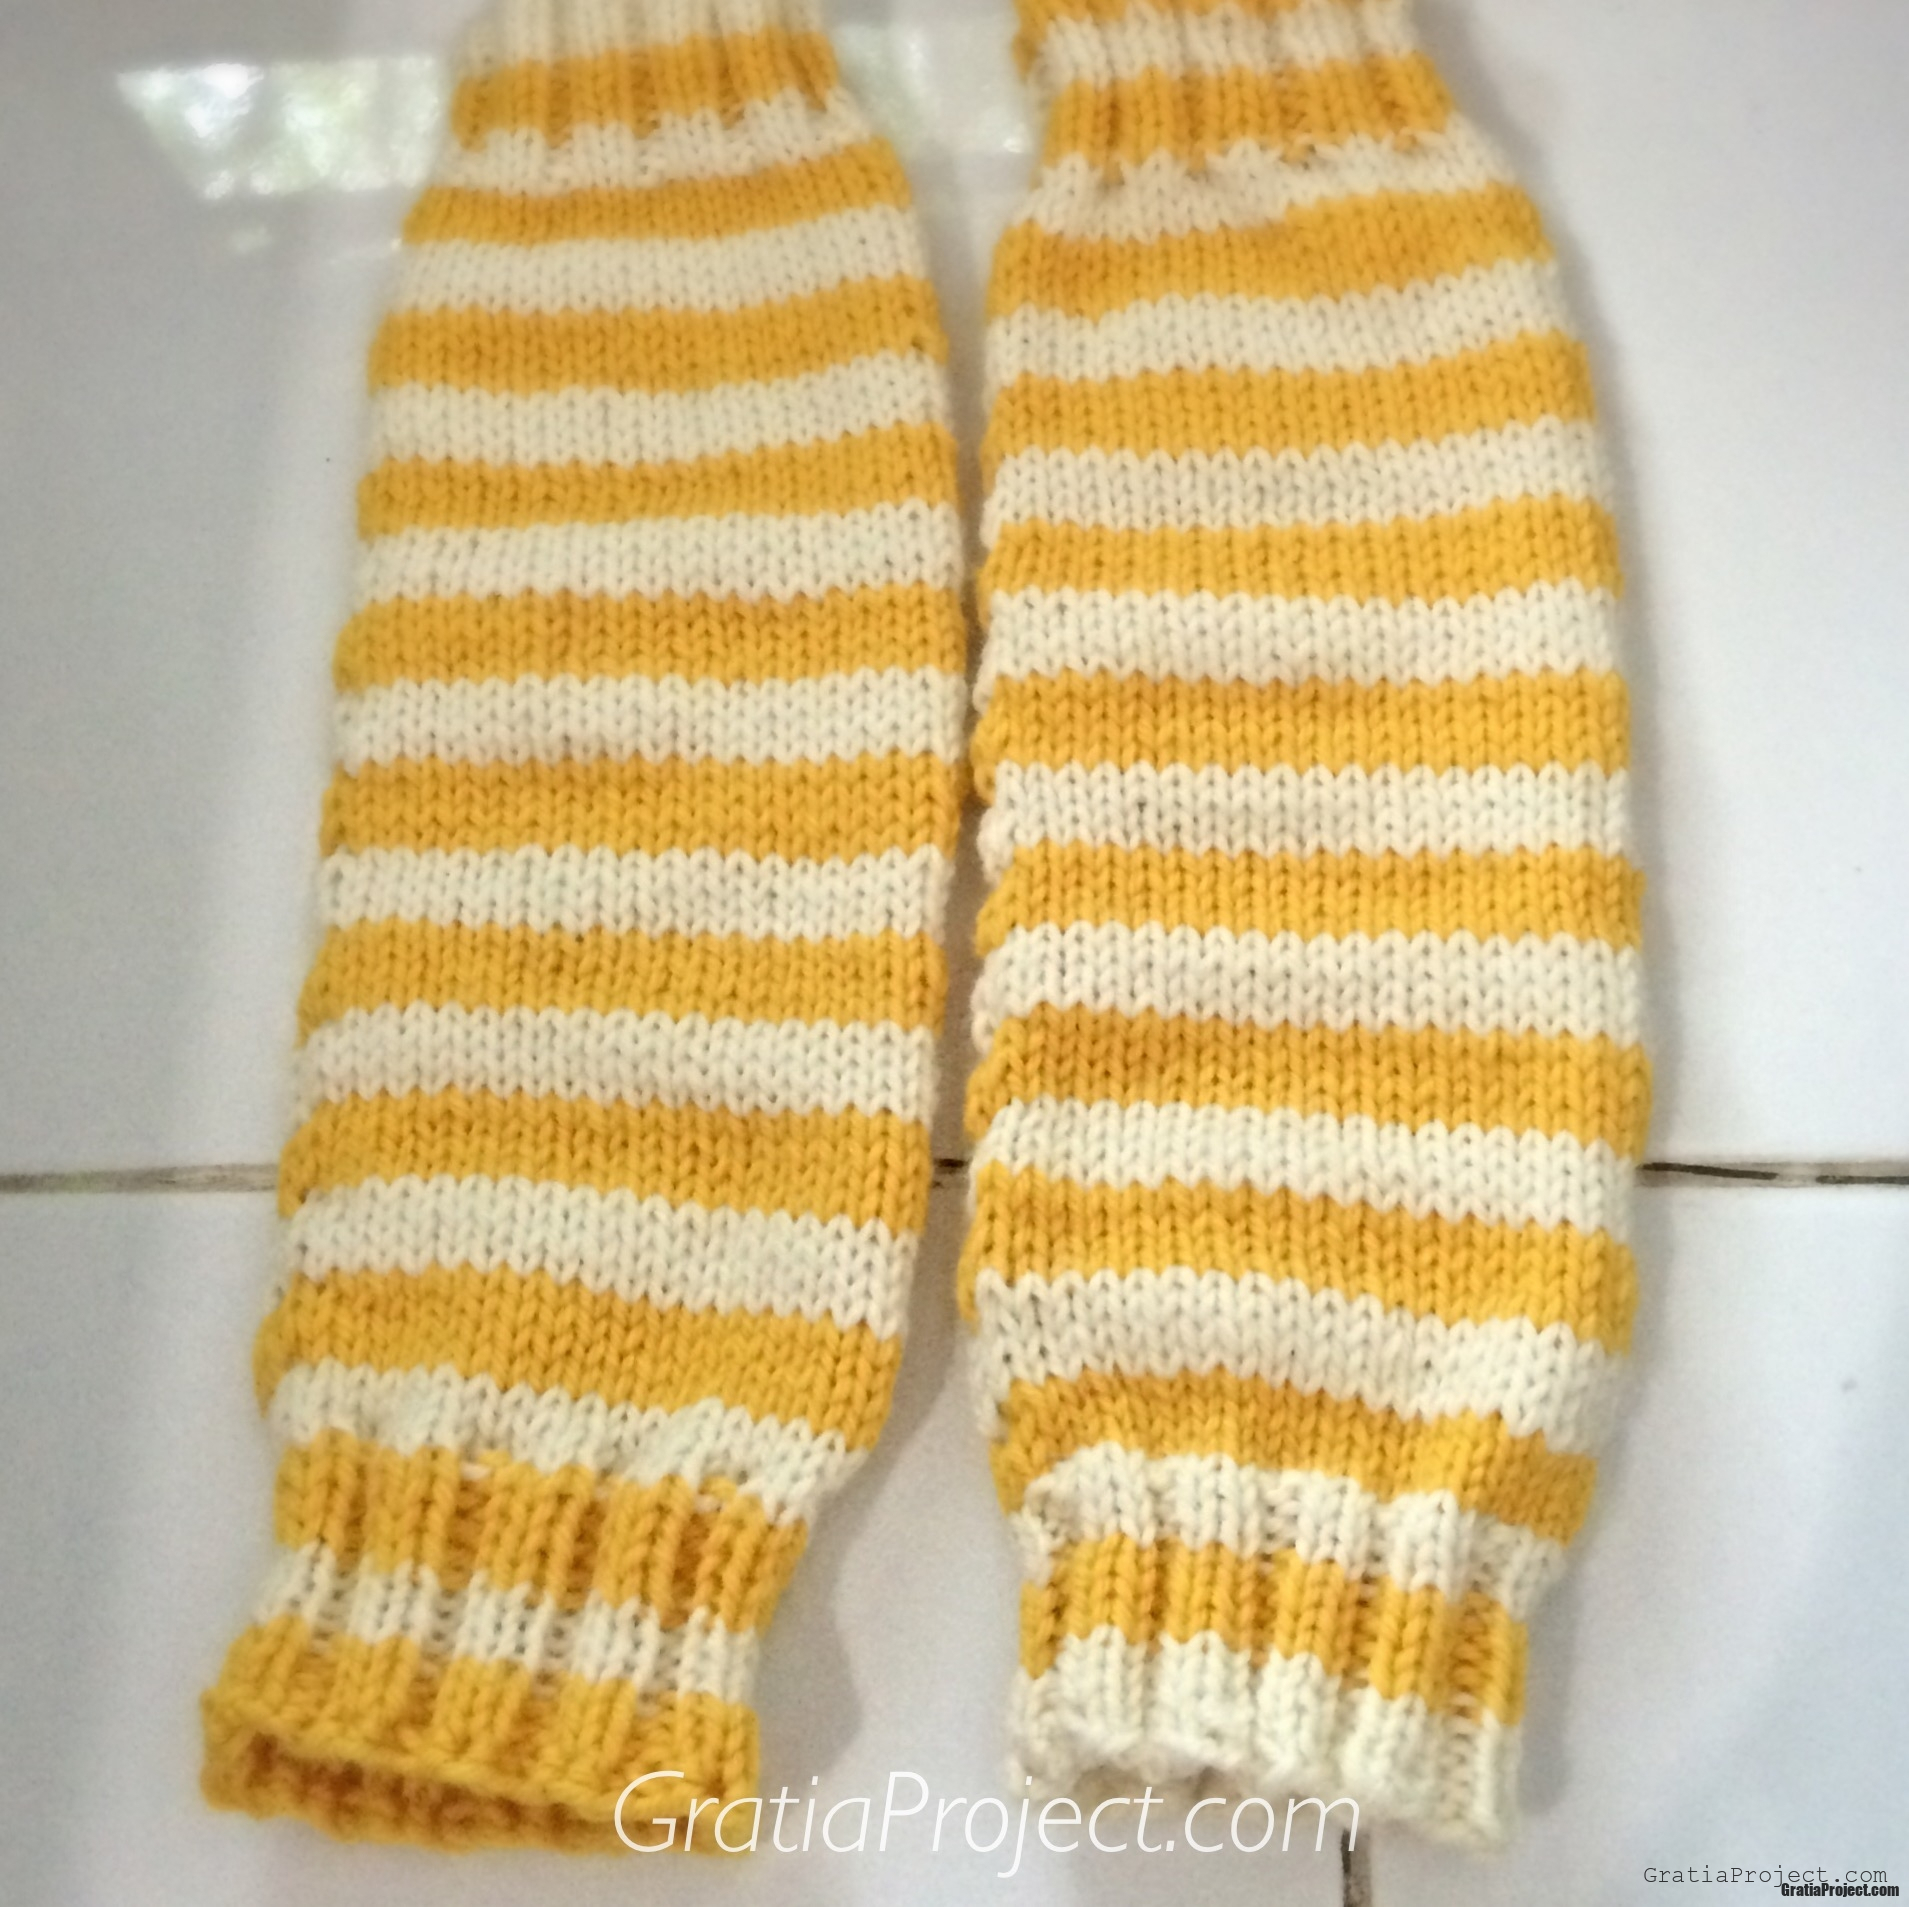 Knitting Leg Warmers Pattern : Striped Leg Warmers Knitting Pattern   Gratia Project